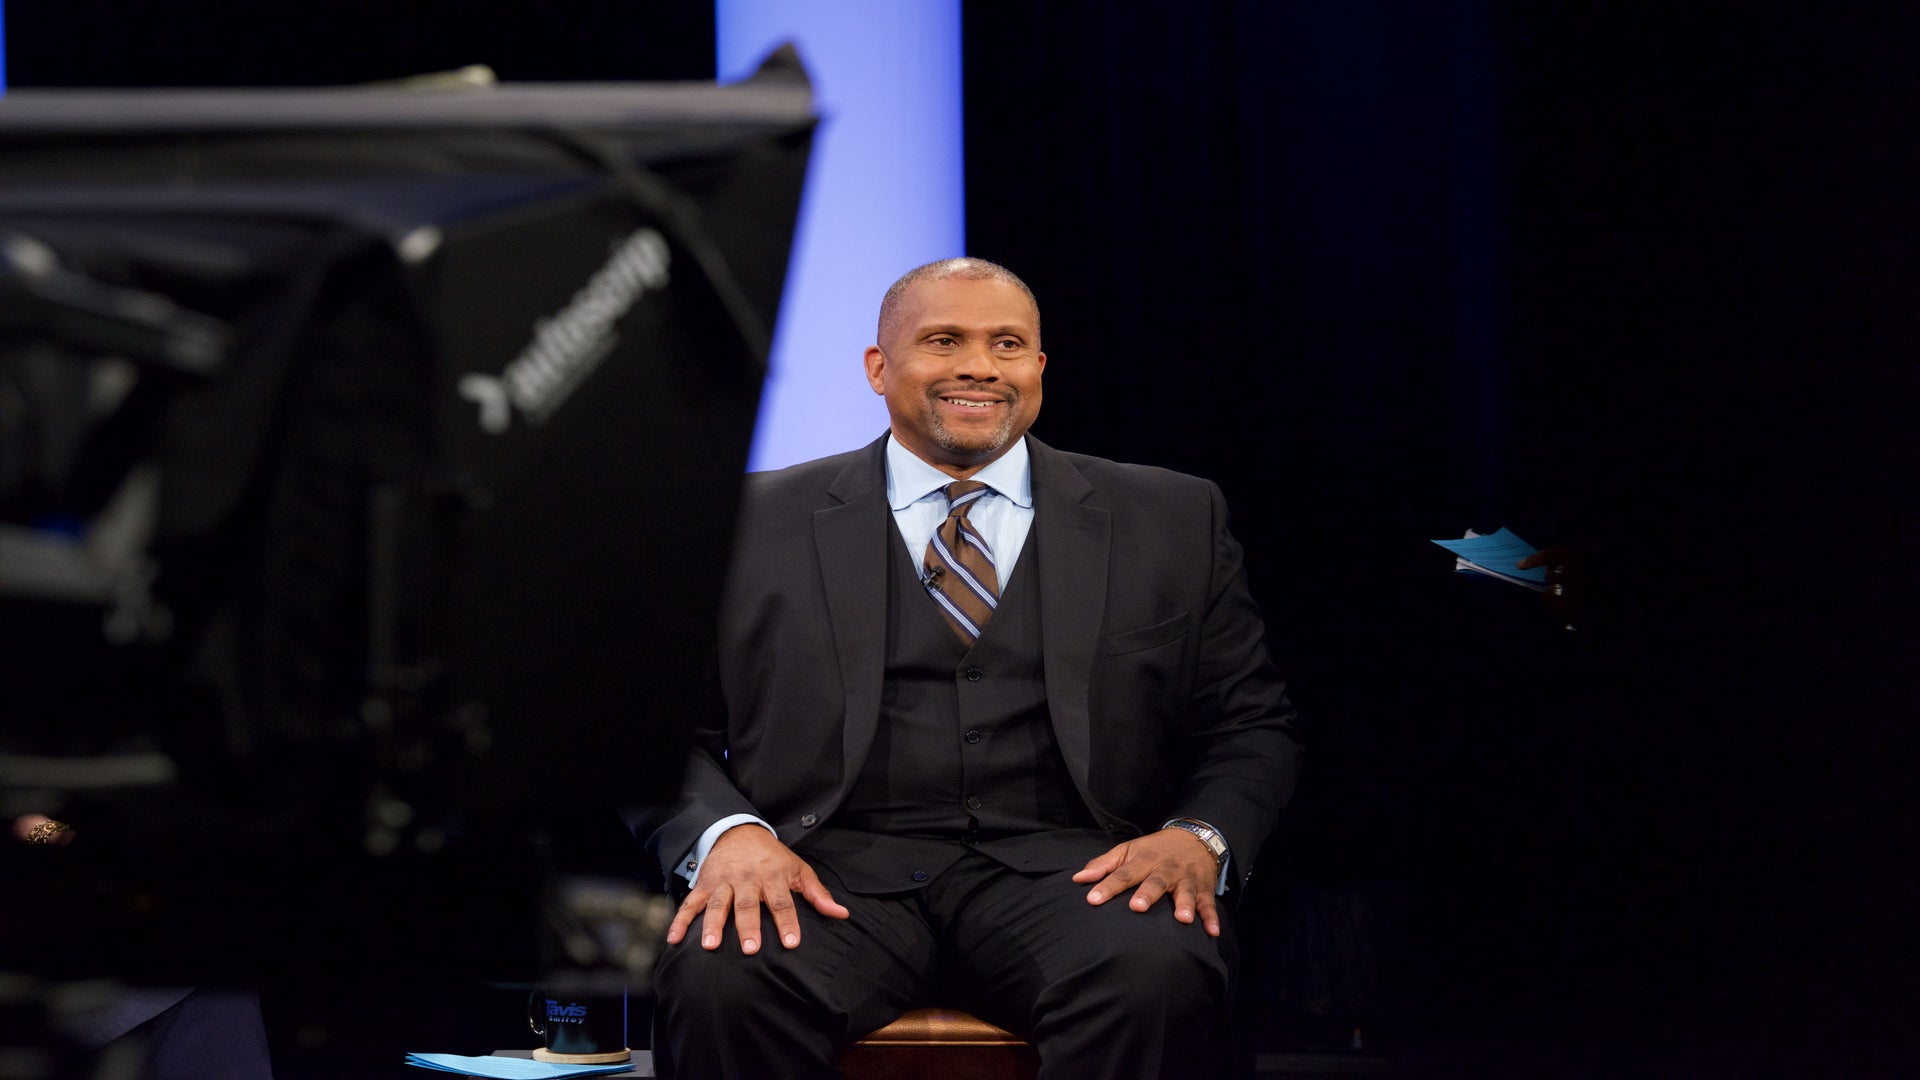 Tavis Smiley Is Trying To Defend Himself Against Allegations With A Press Tour. It's Not Going Well